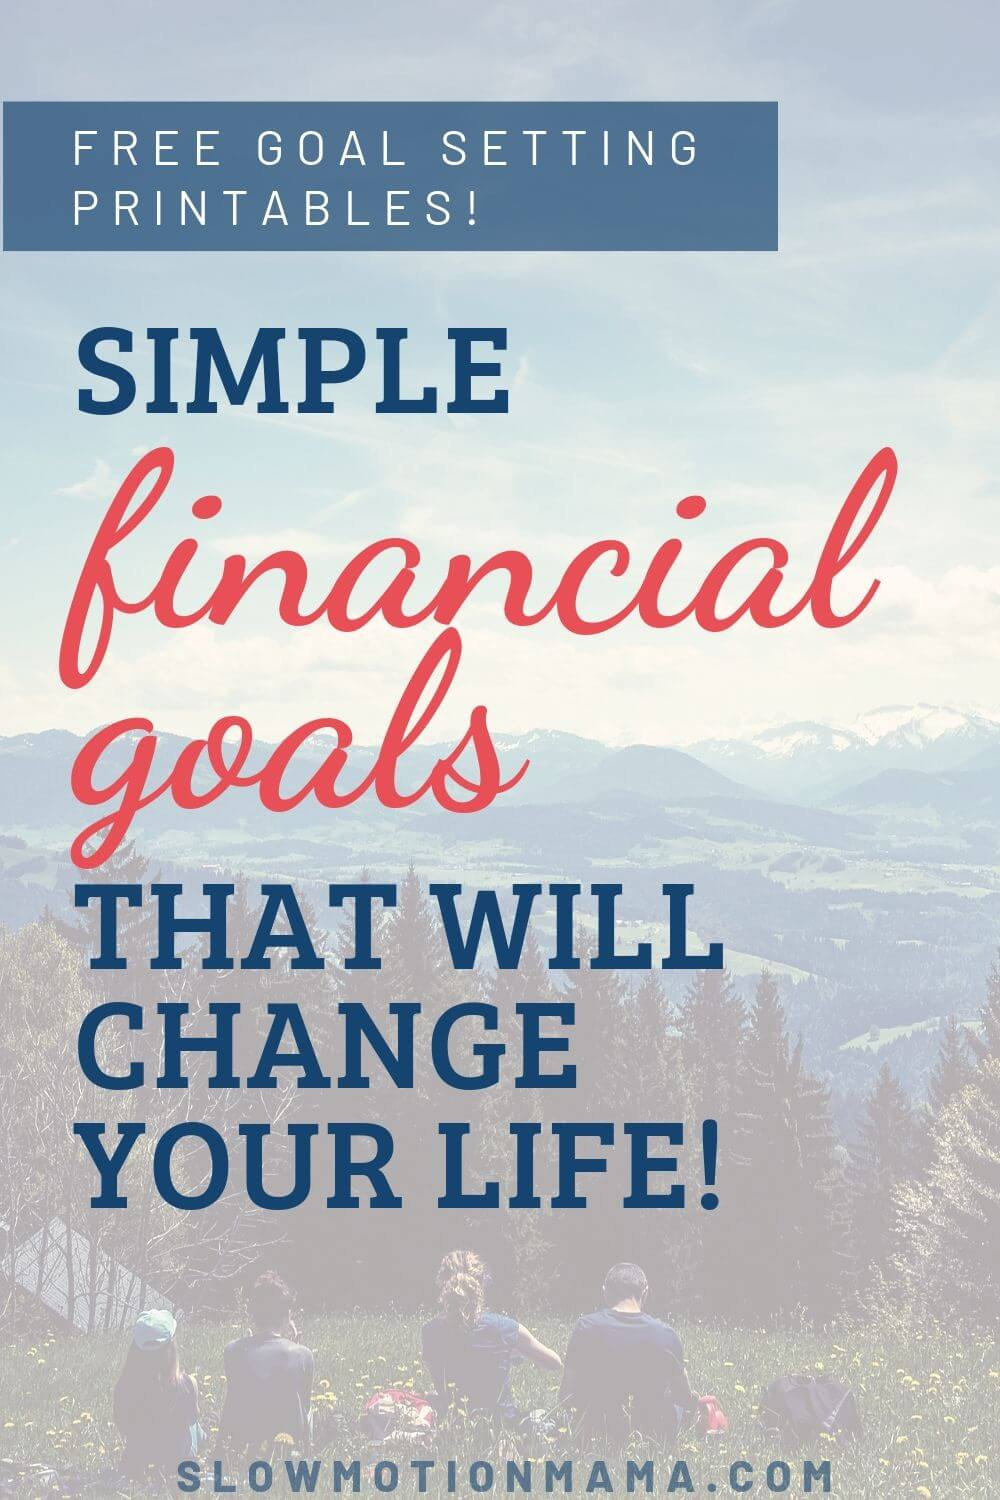 Want to set some financial goals, but don't know where to start? Check out this example list of financial goals. Whether you want to save money, become debt free, or pay cash for a car or home, our free, simple financial goals printables will help you set and track personal finance goals that you'll actually accomplish! #financialgoals #freeprintable #moneymanagement